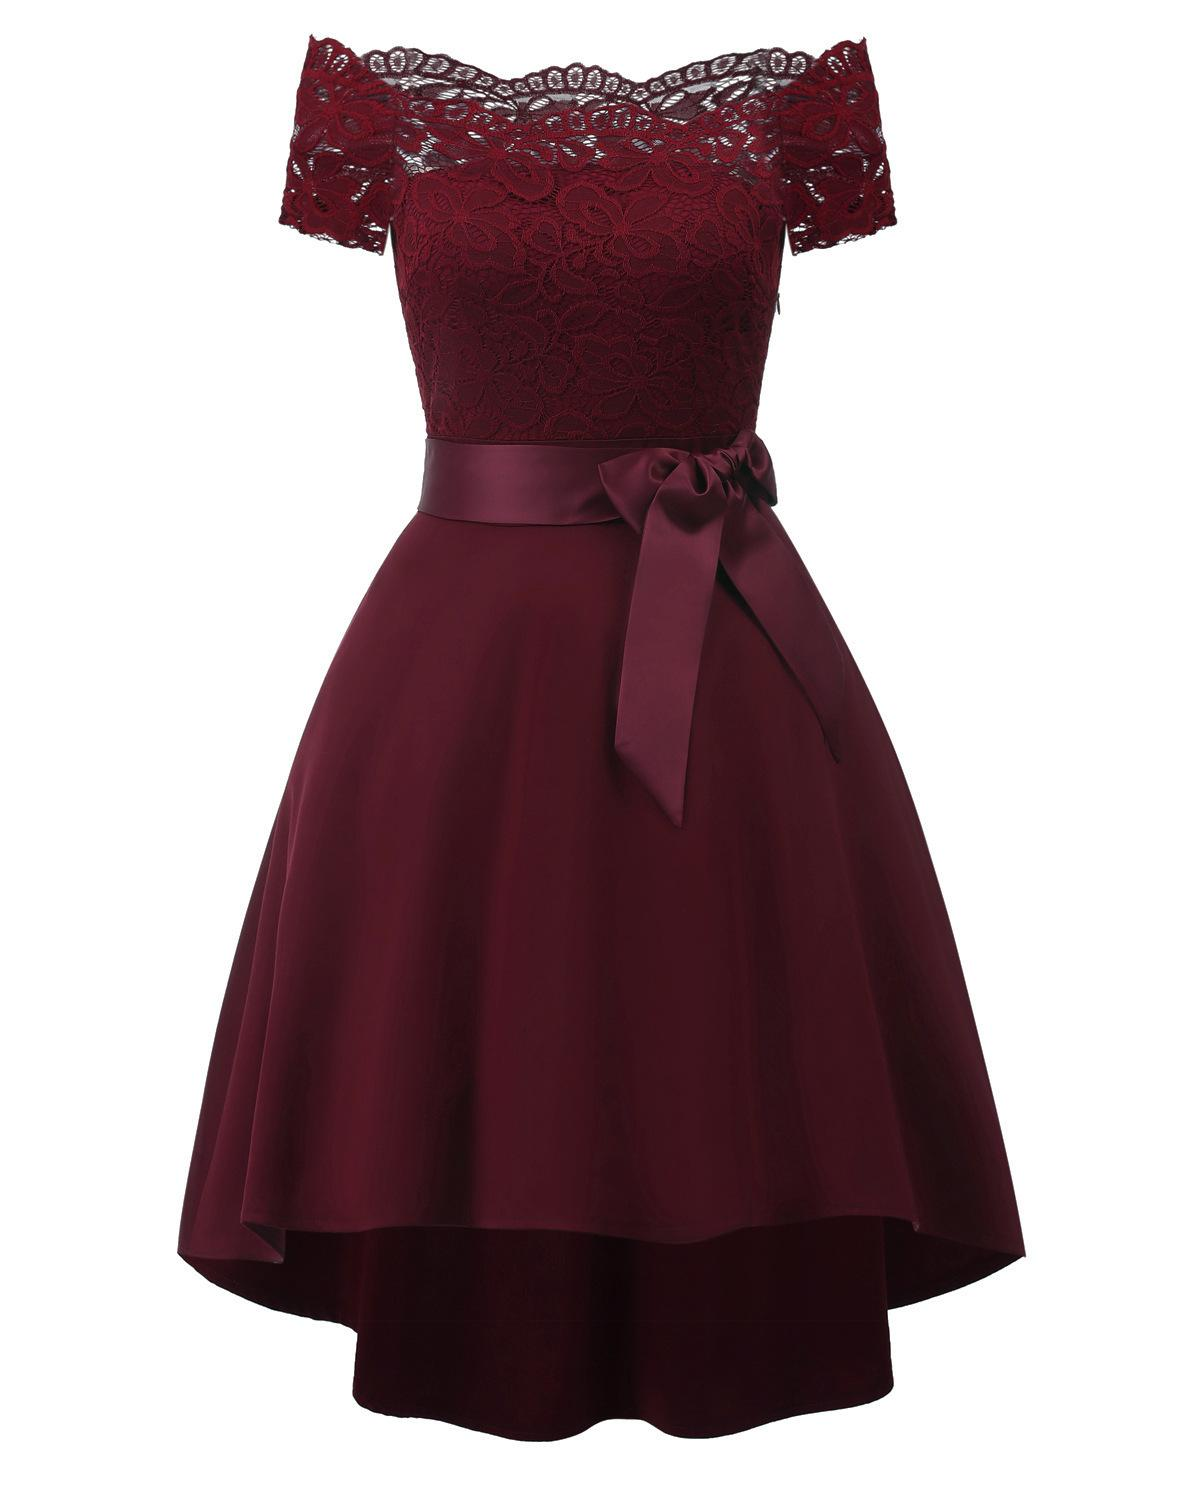 Off Shoulder Burgundy Hi-lo Lace Cocktail Dresses Bow Robe Elegant Formal Party Dress 2019 Short Vestidos Homecoming Dress